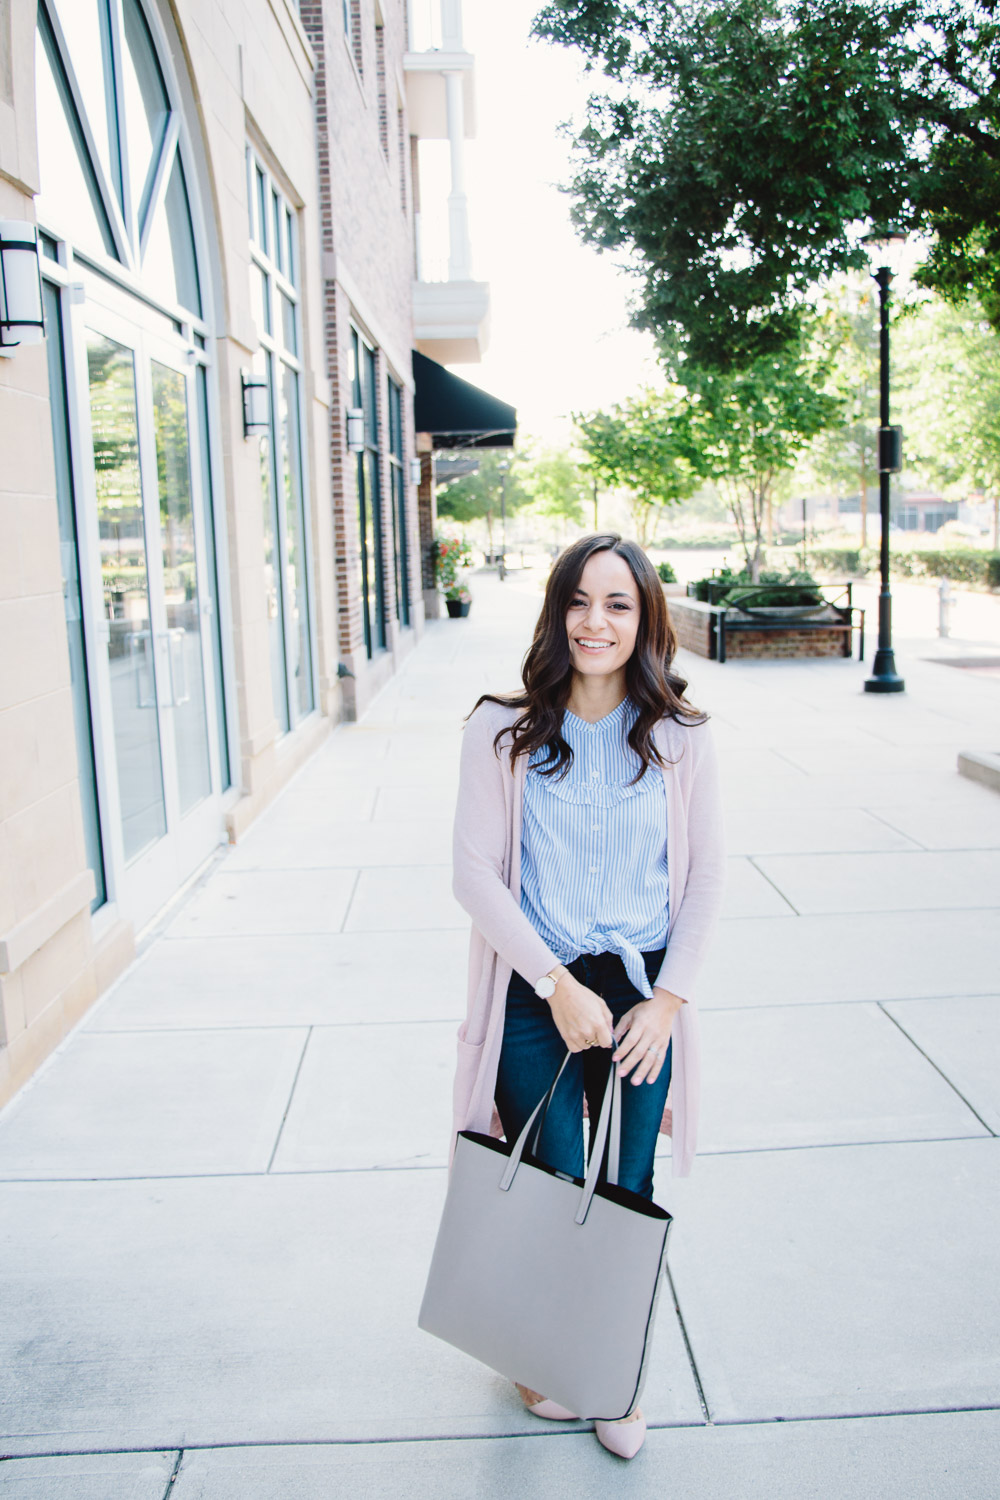 Affordable petite fashion at Old Navy, styled by petite style blogger, Brooke.